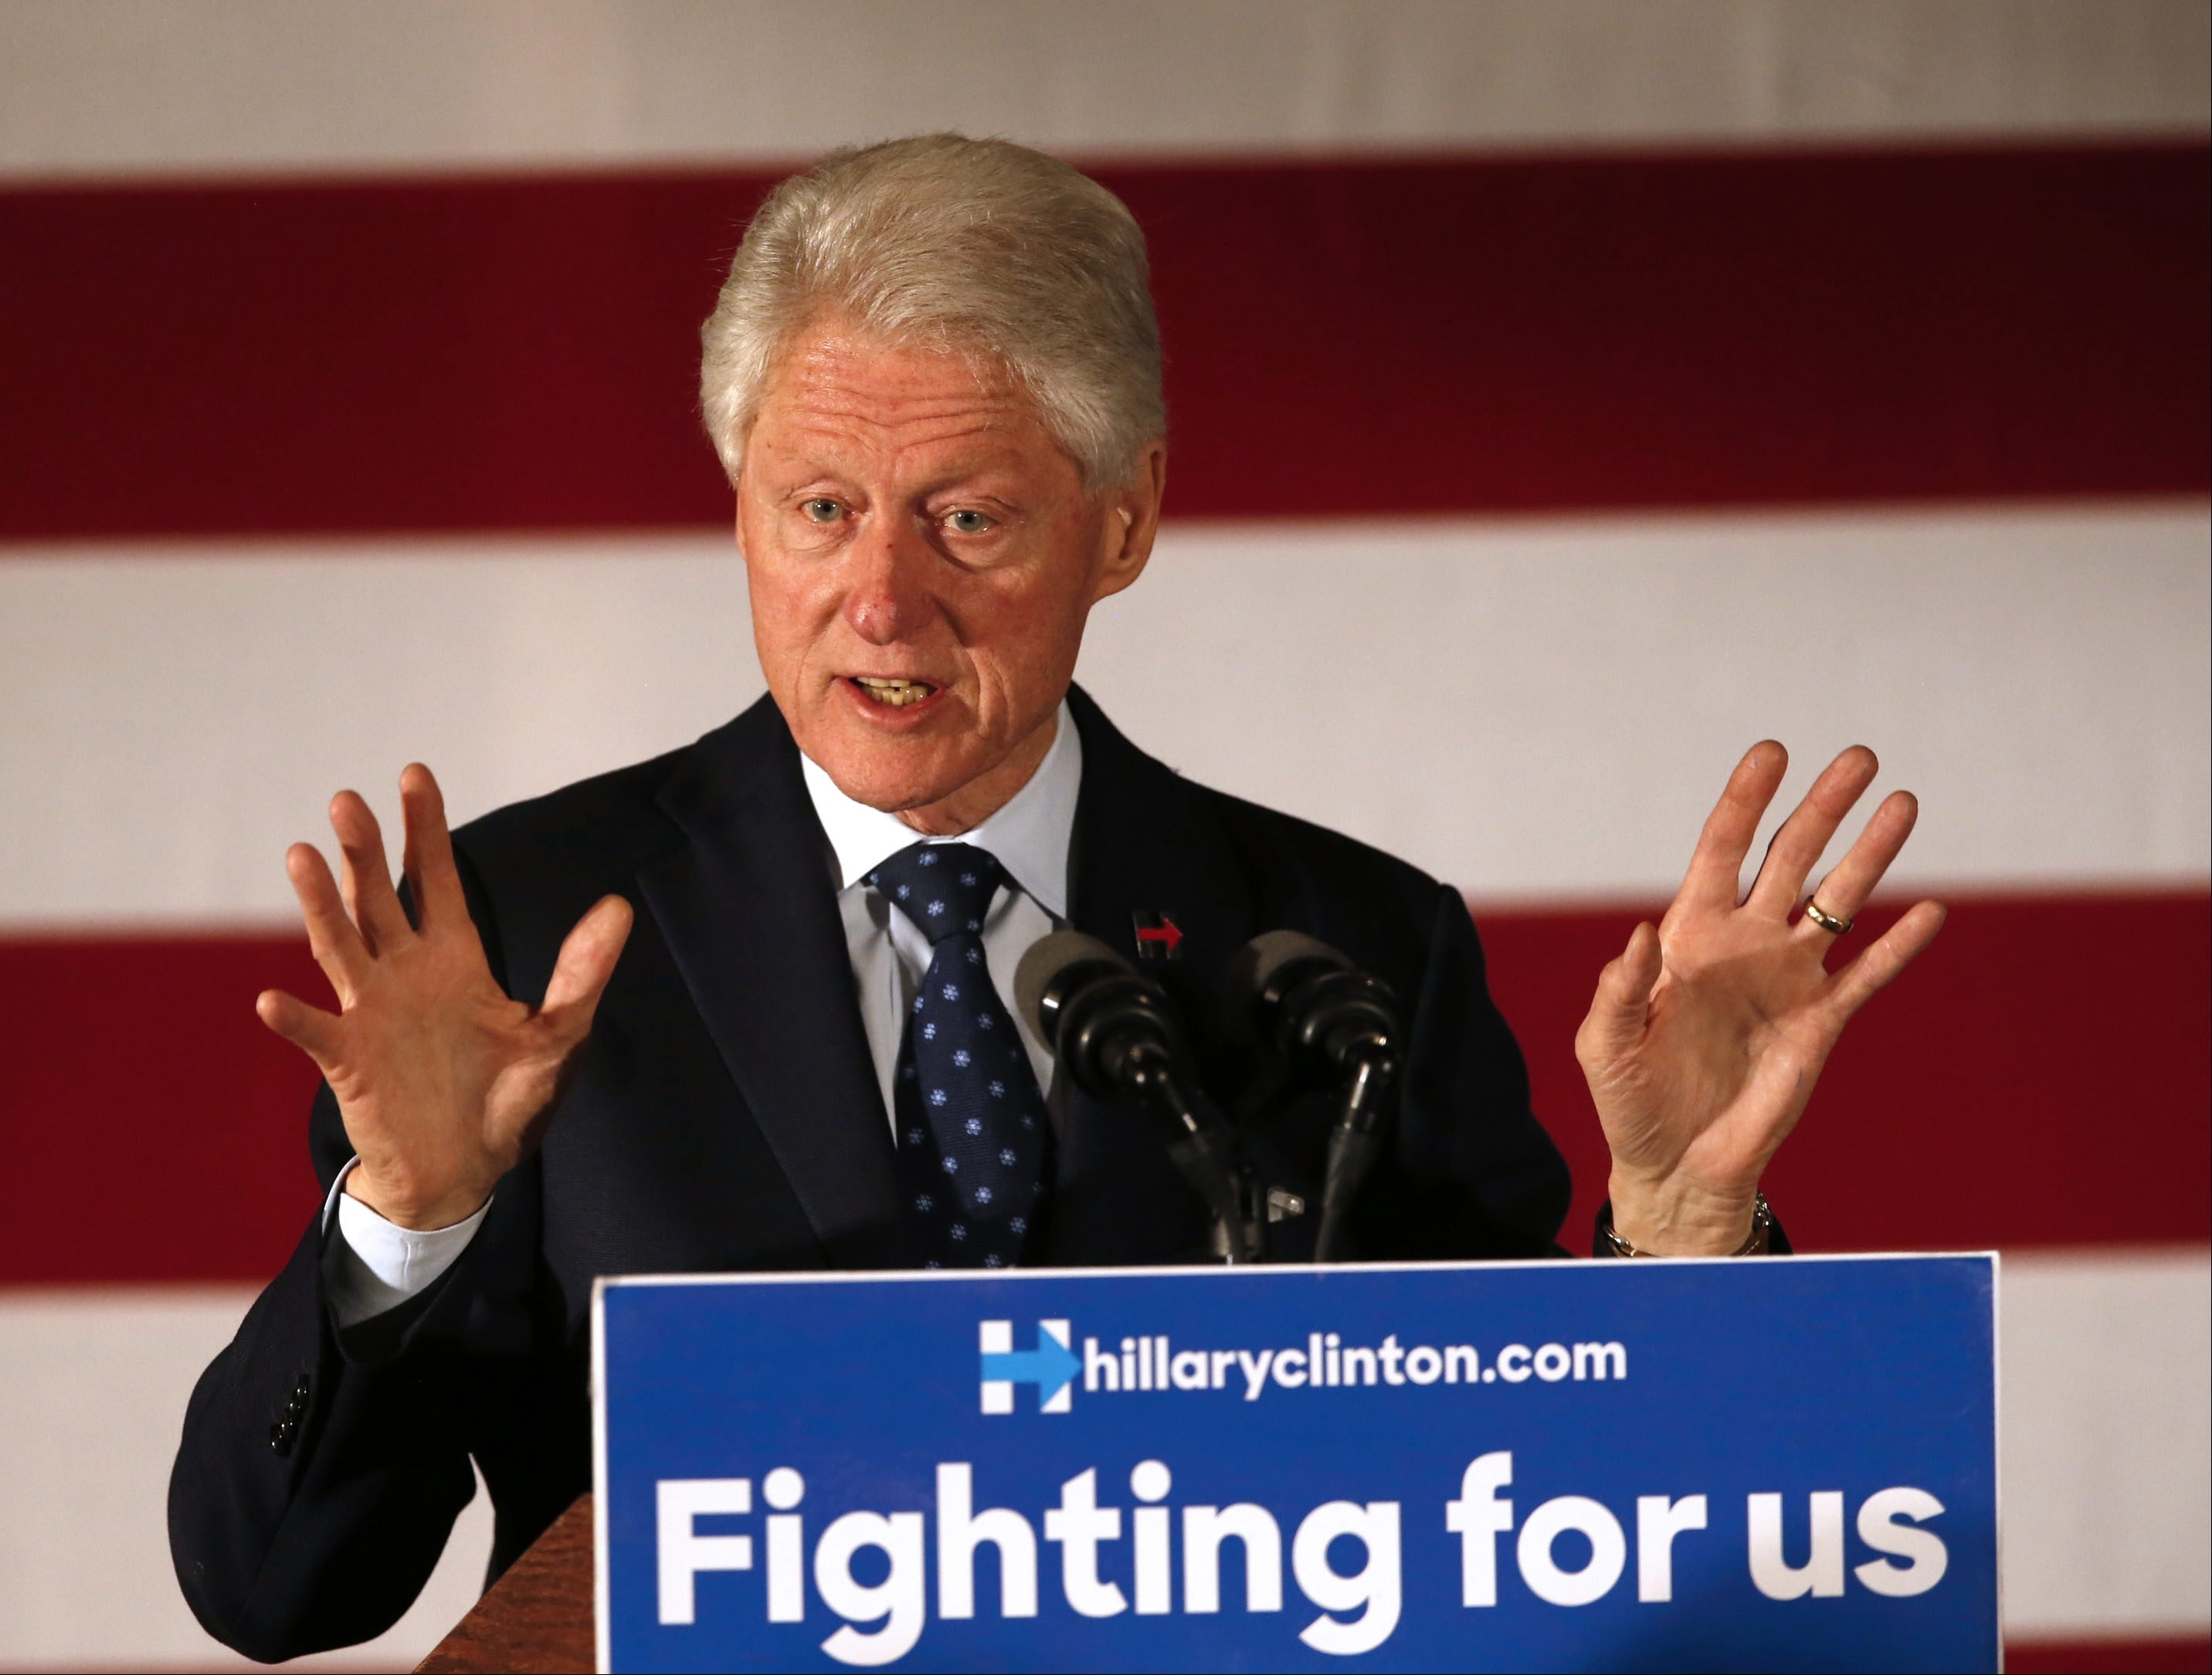 Former President Bill Clinton speaking during the campaign stop for his wife Hillary Clinton at the Grapevine Restaurant in Depew on Tuesday, April 5, 2016.  (Robert Kirkham/Buffalo News)